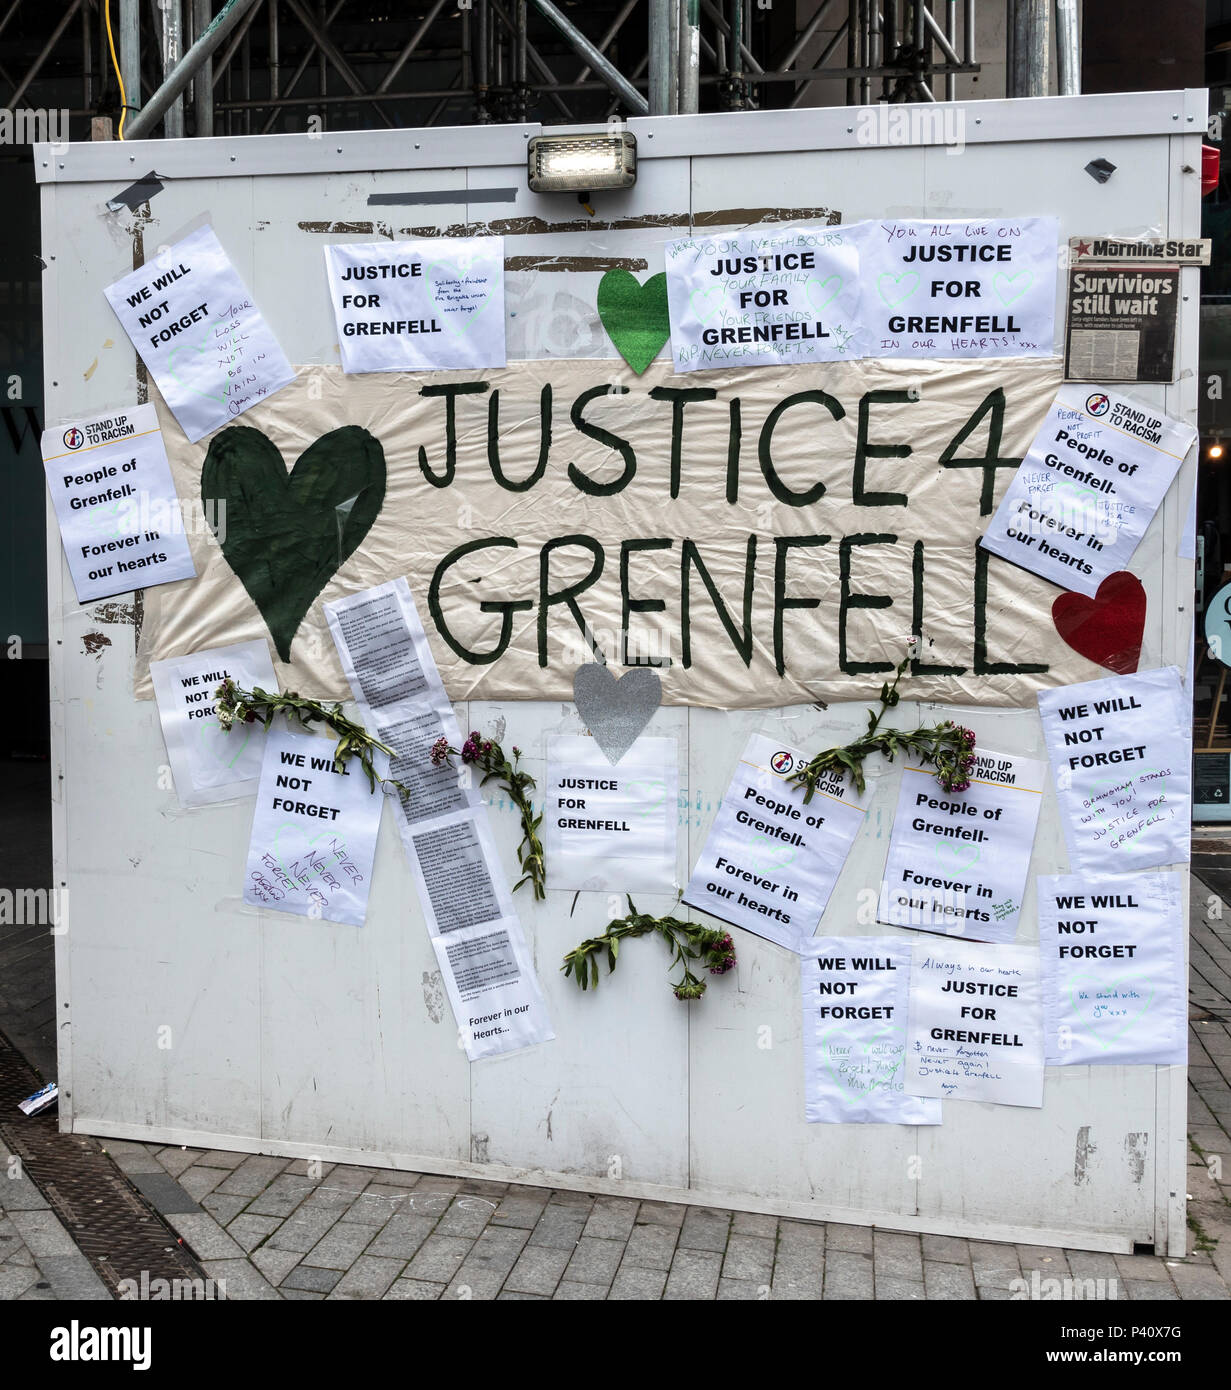 Collage board Justice 4 Grenfell by Stand up to Racism, an arm of the Socialist Workers Party, in Birmingham City Centre, England, UK - Stock Image